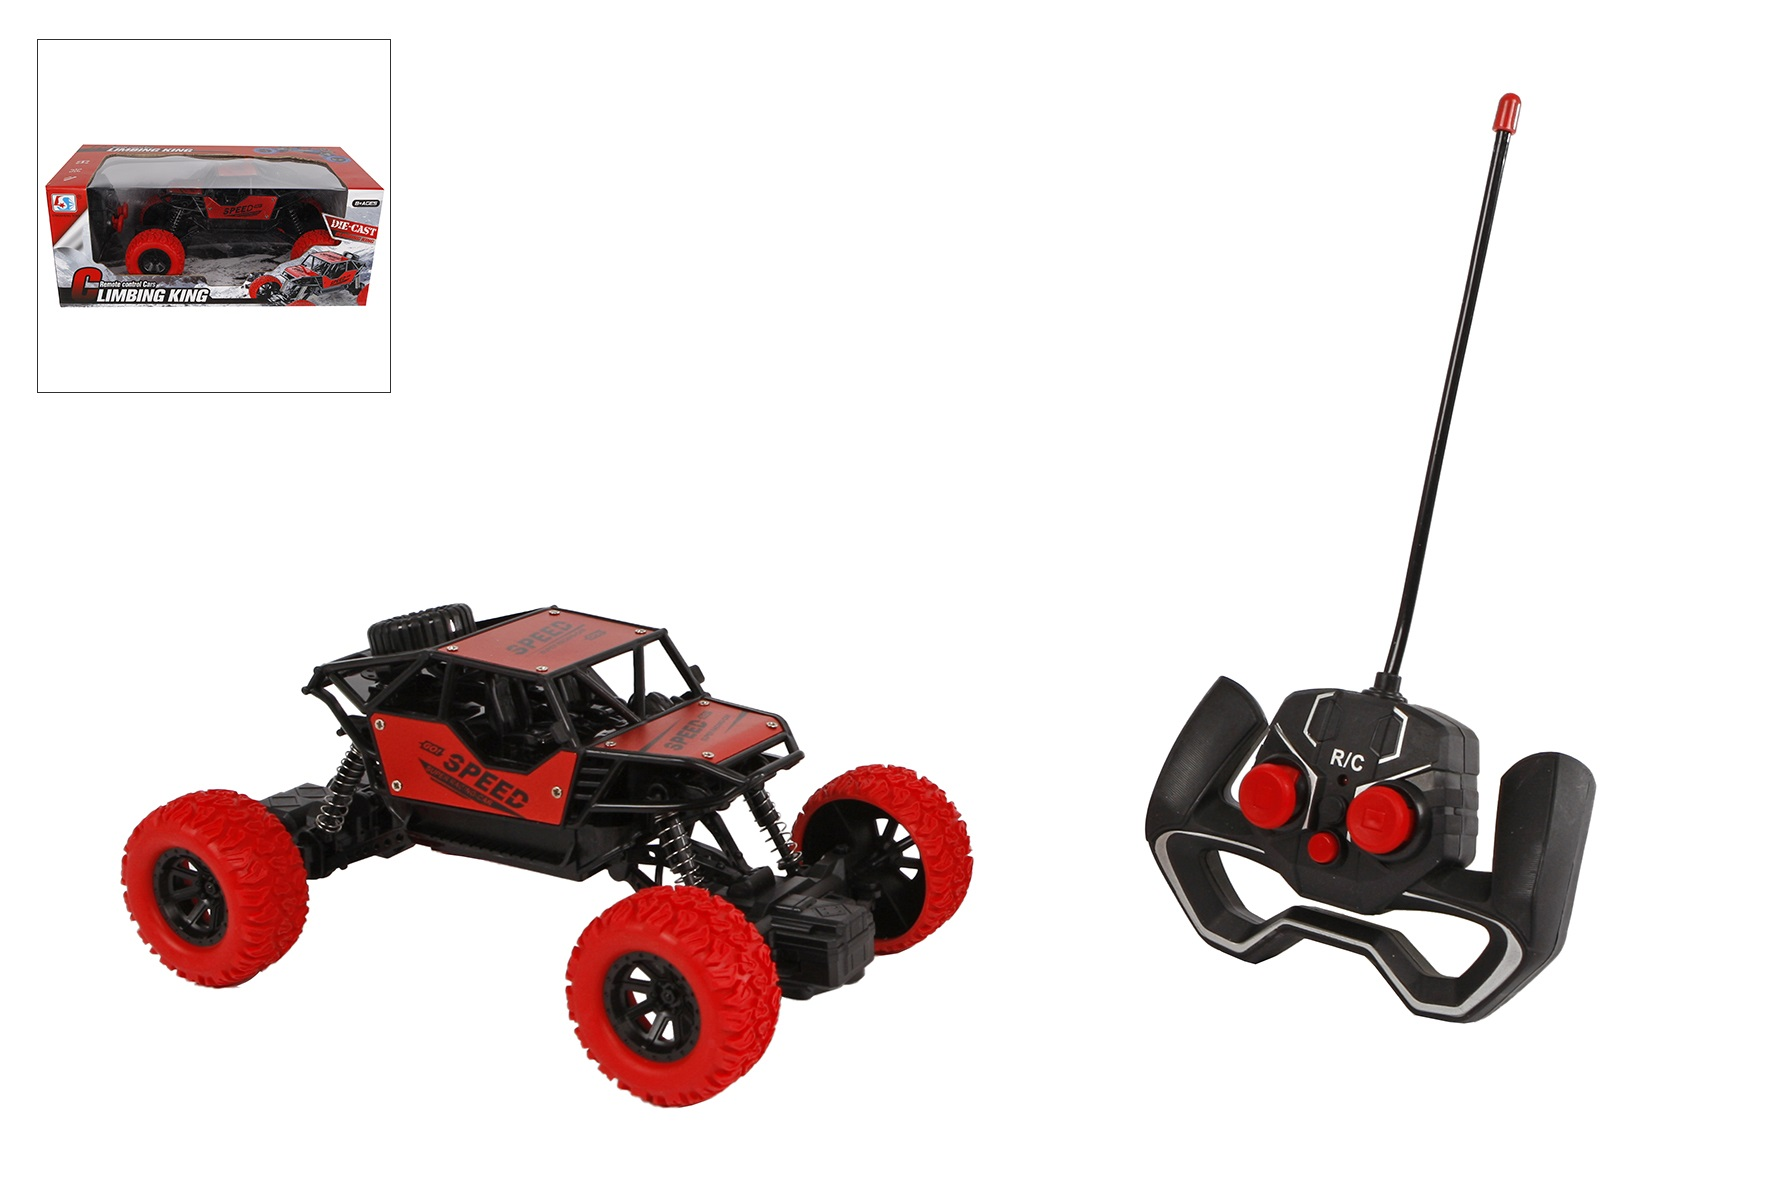 Climbing King RC car